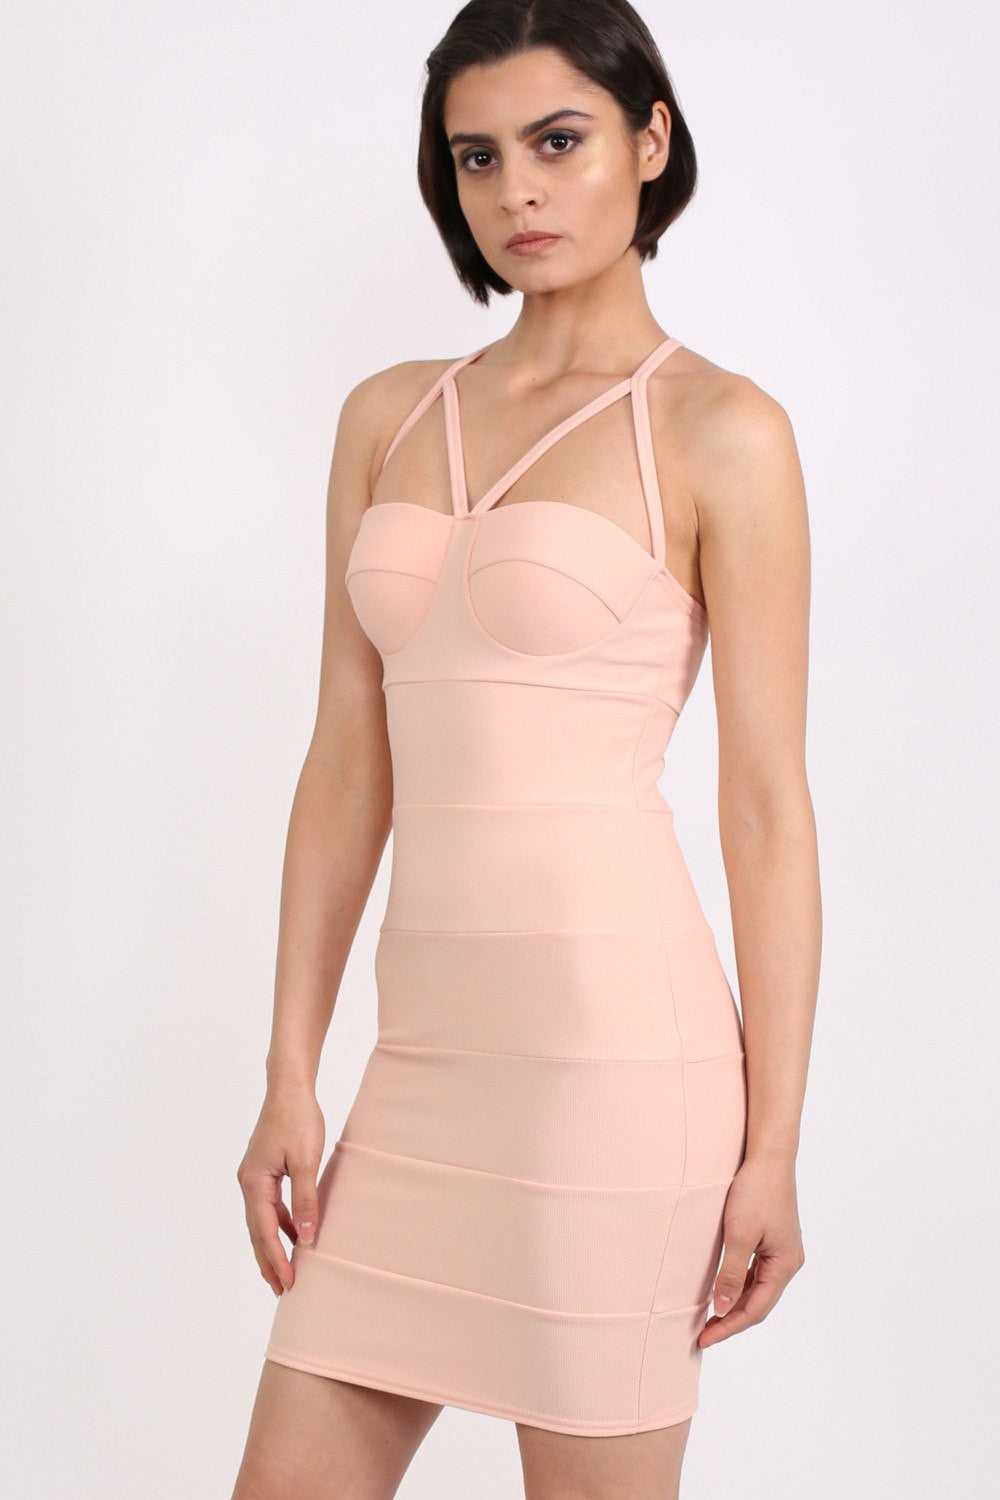 Strappy Ribbed Bandage Bodycon Mini Dress in Nude 1